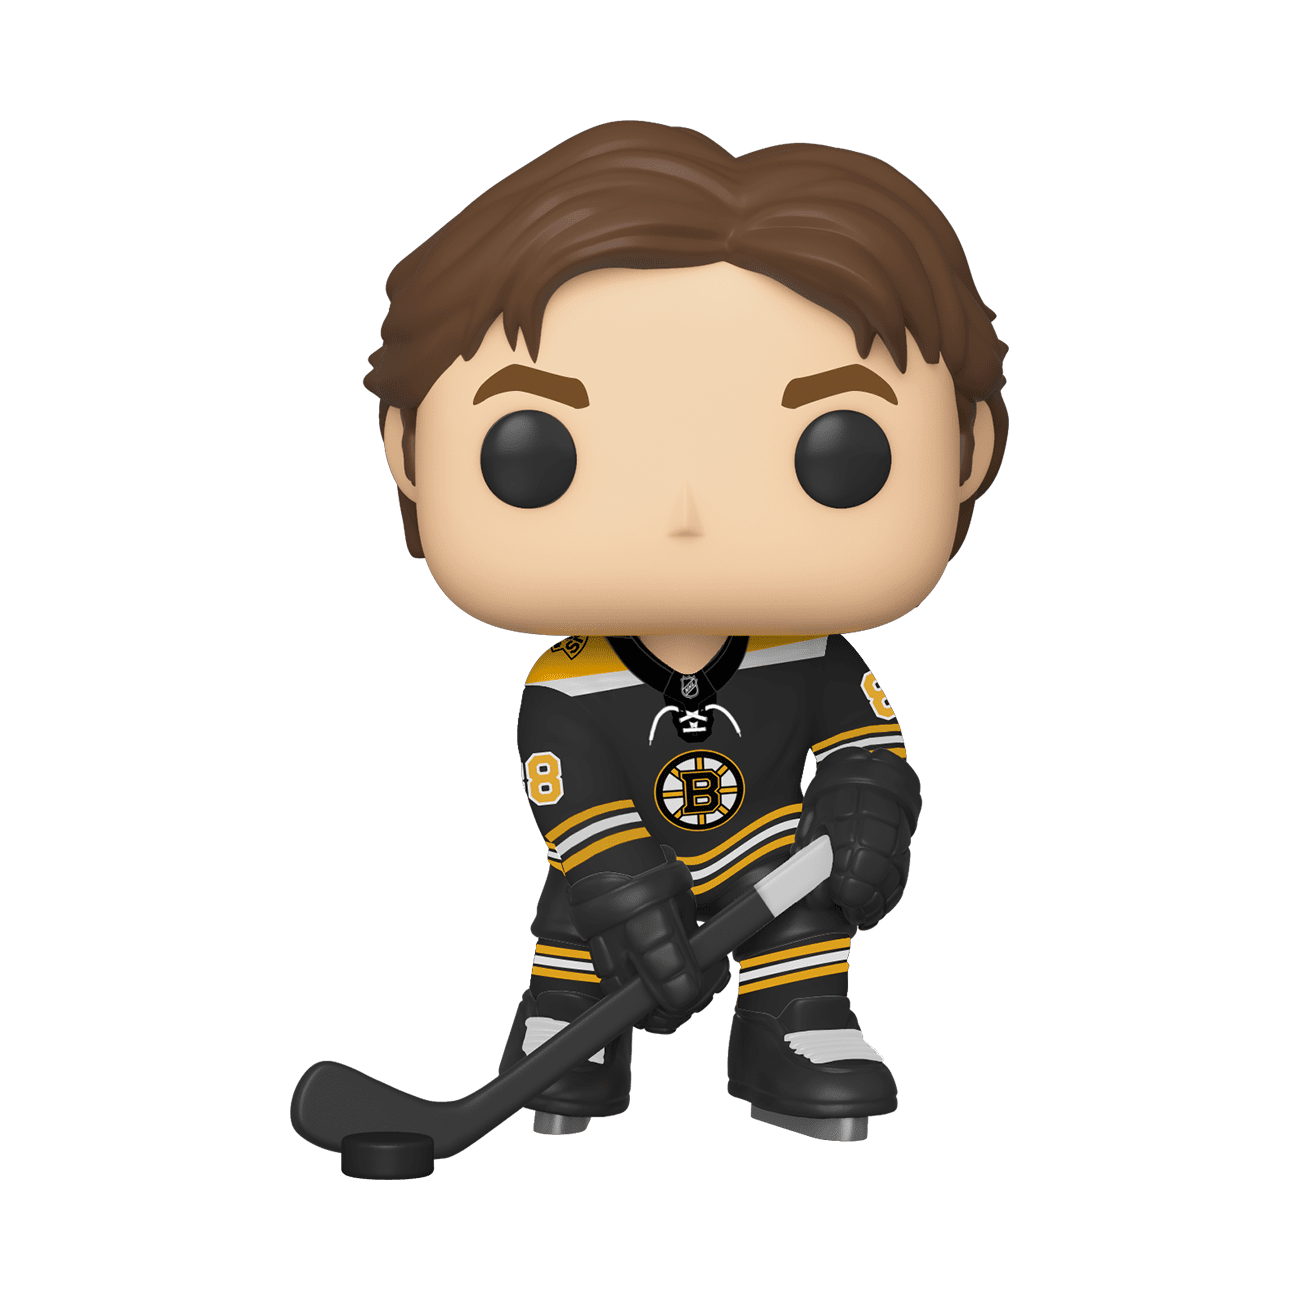 44117_NHL_David_Bruins_POP_GLAM-WEB.png